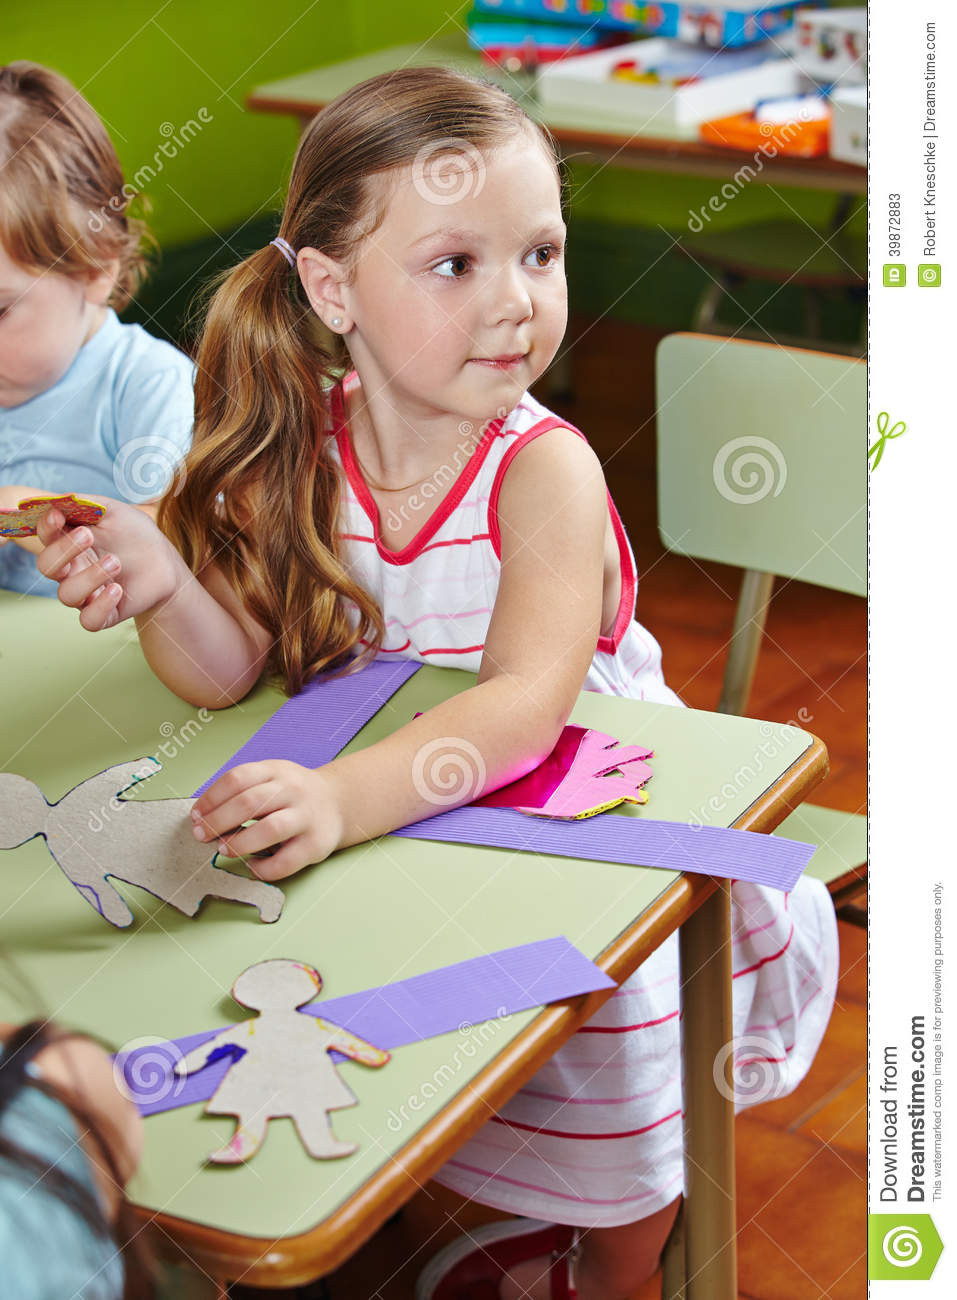 Best ideas about Kids Doing Crafts . Save or Pin Children Doing Arts & Crafts Stock Image Now.